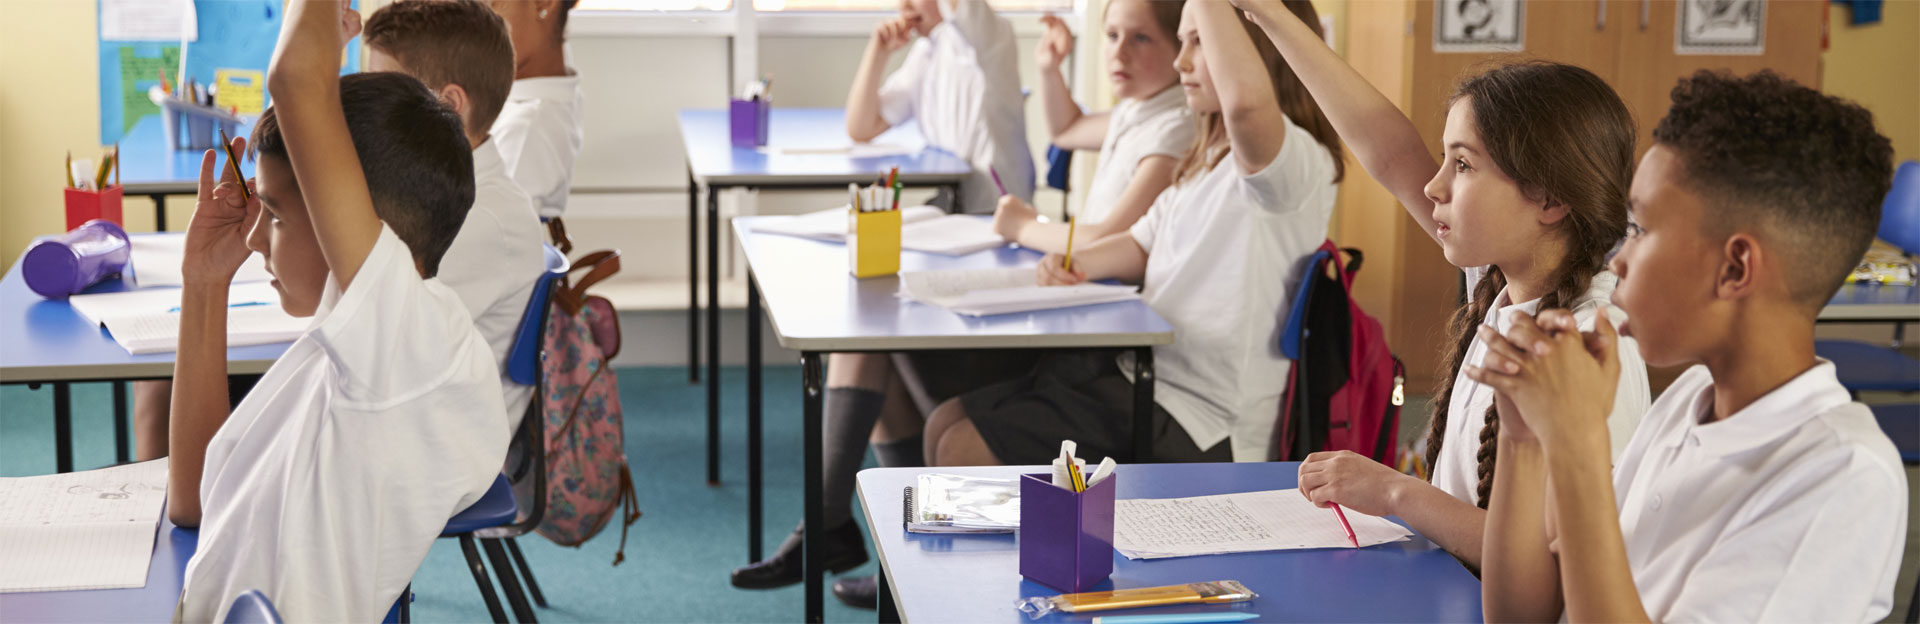 Pupils raising hands in class